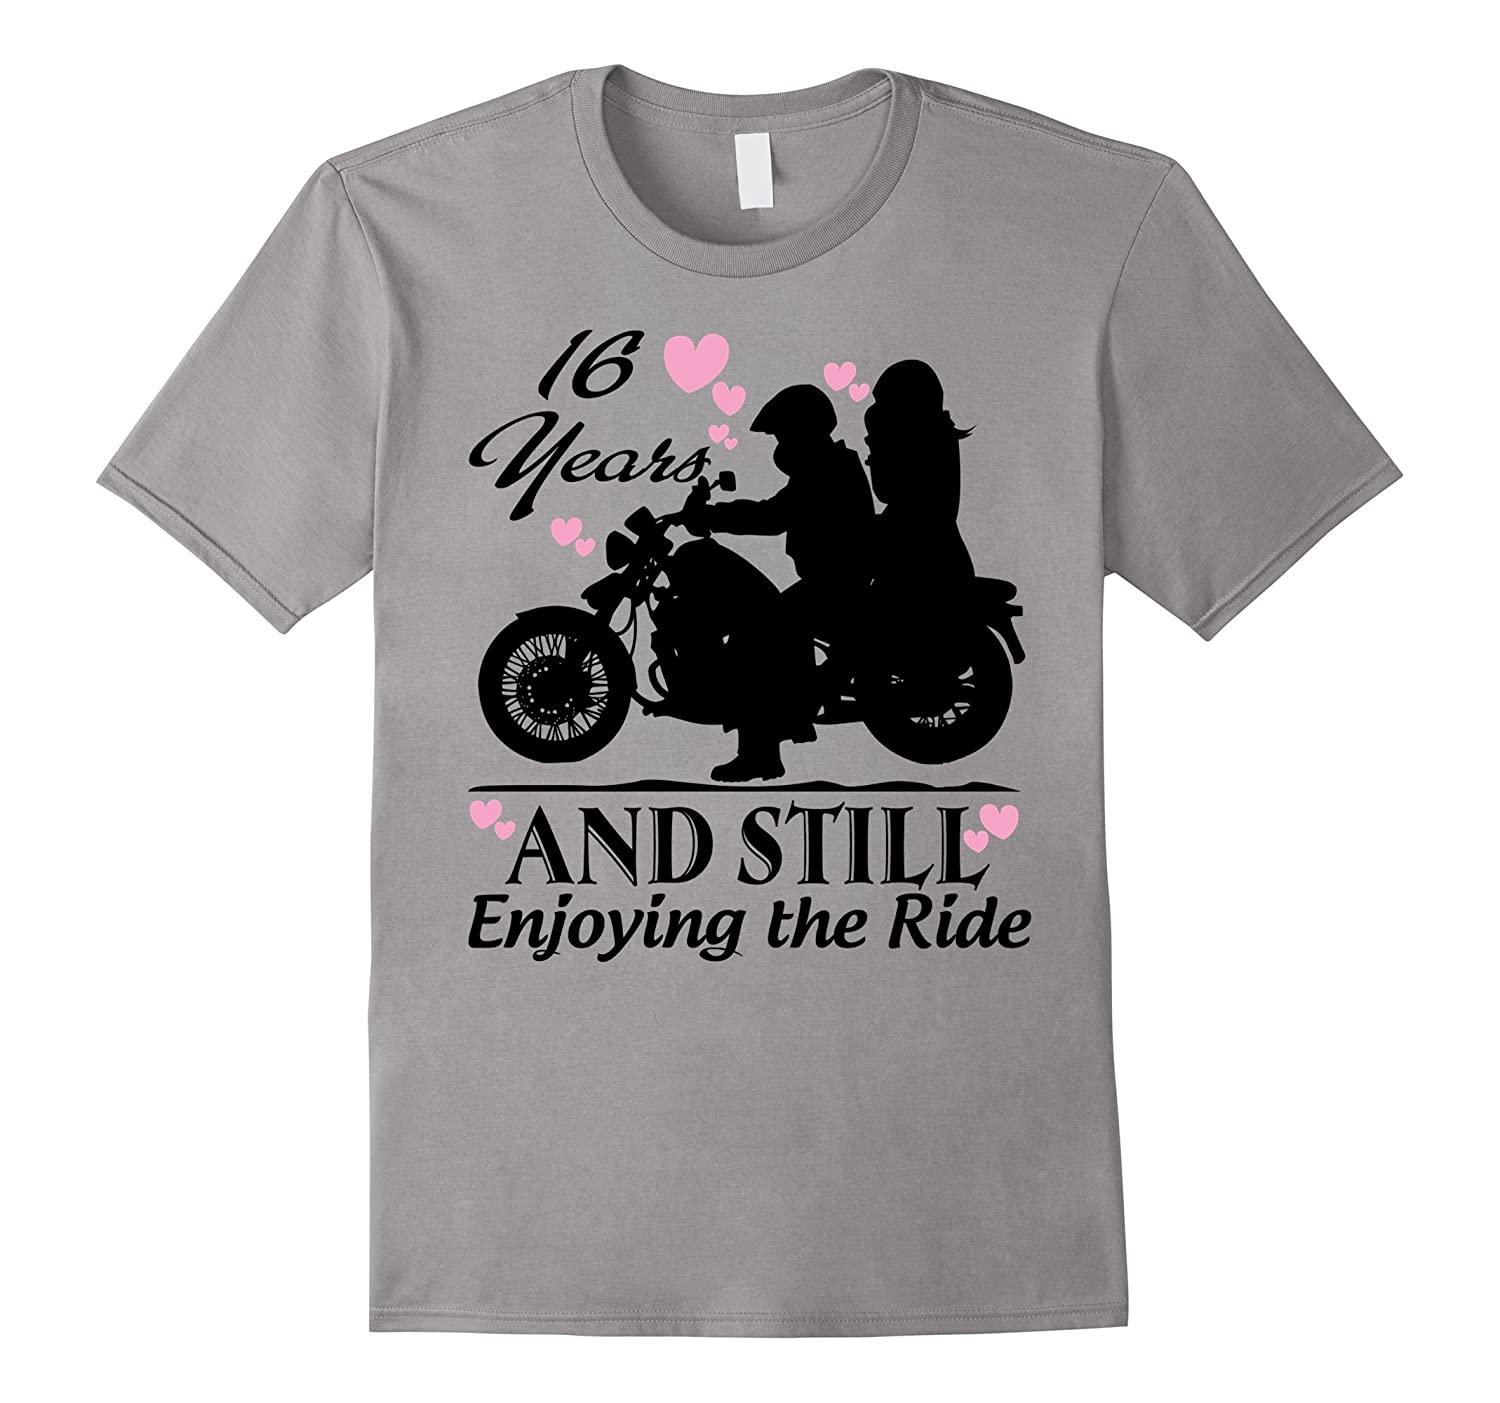 What Is The 16th Wedding Anniversary Gift: JP.Shirt:16th Wedding Anniversary